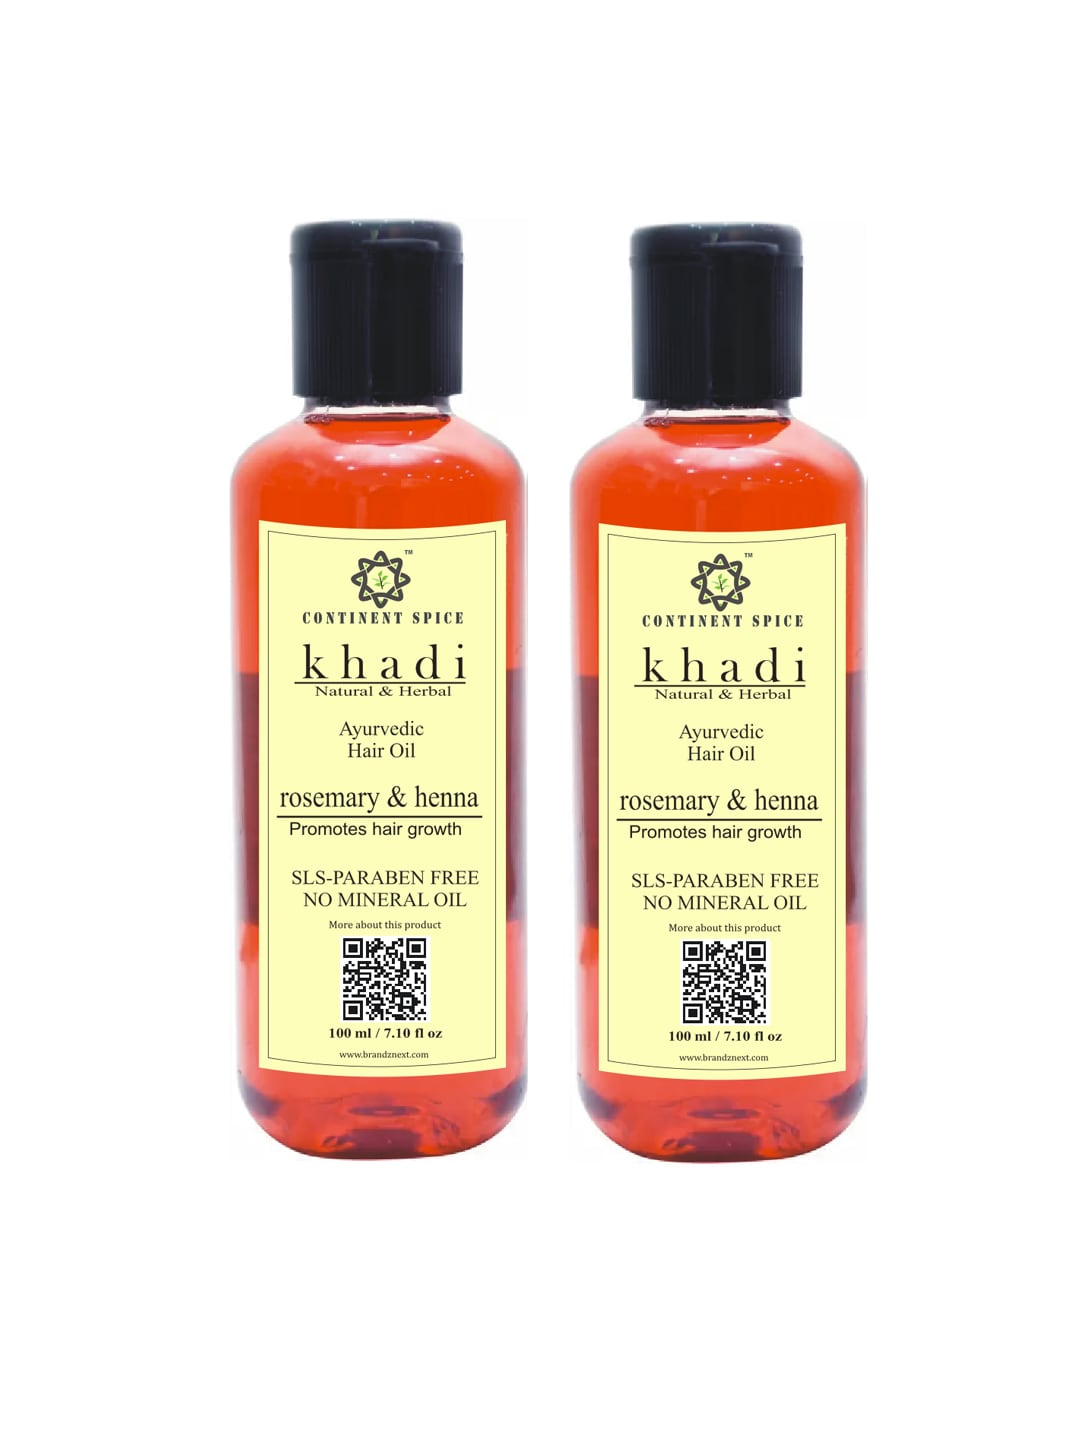 Khadi Continent Spice Set of 2 Rosemary & Henna Ayurvedic Hair Growth Oils 100 ml (each) image